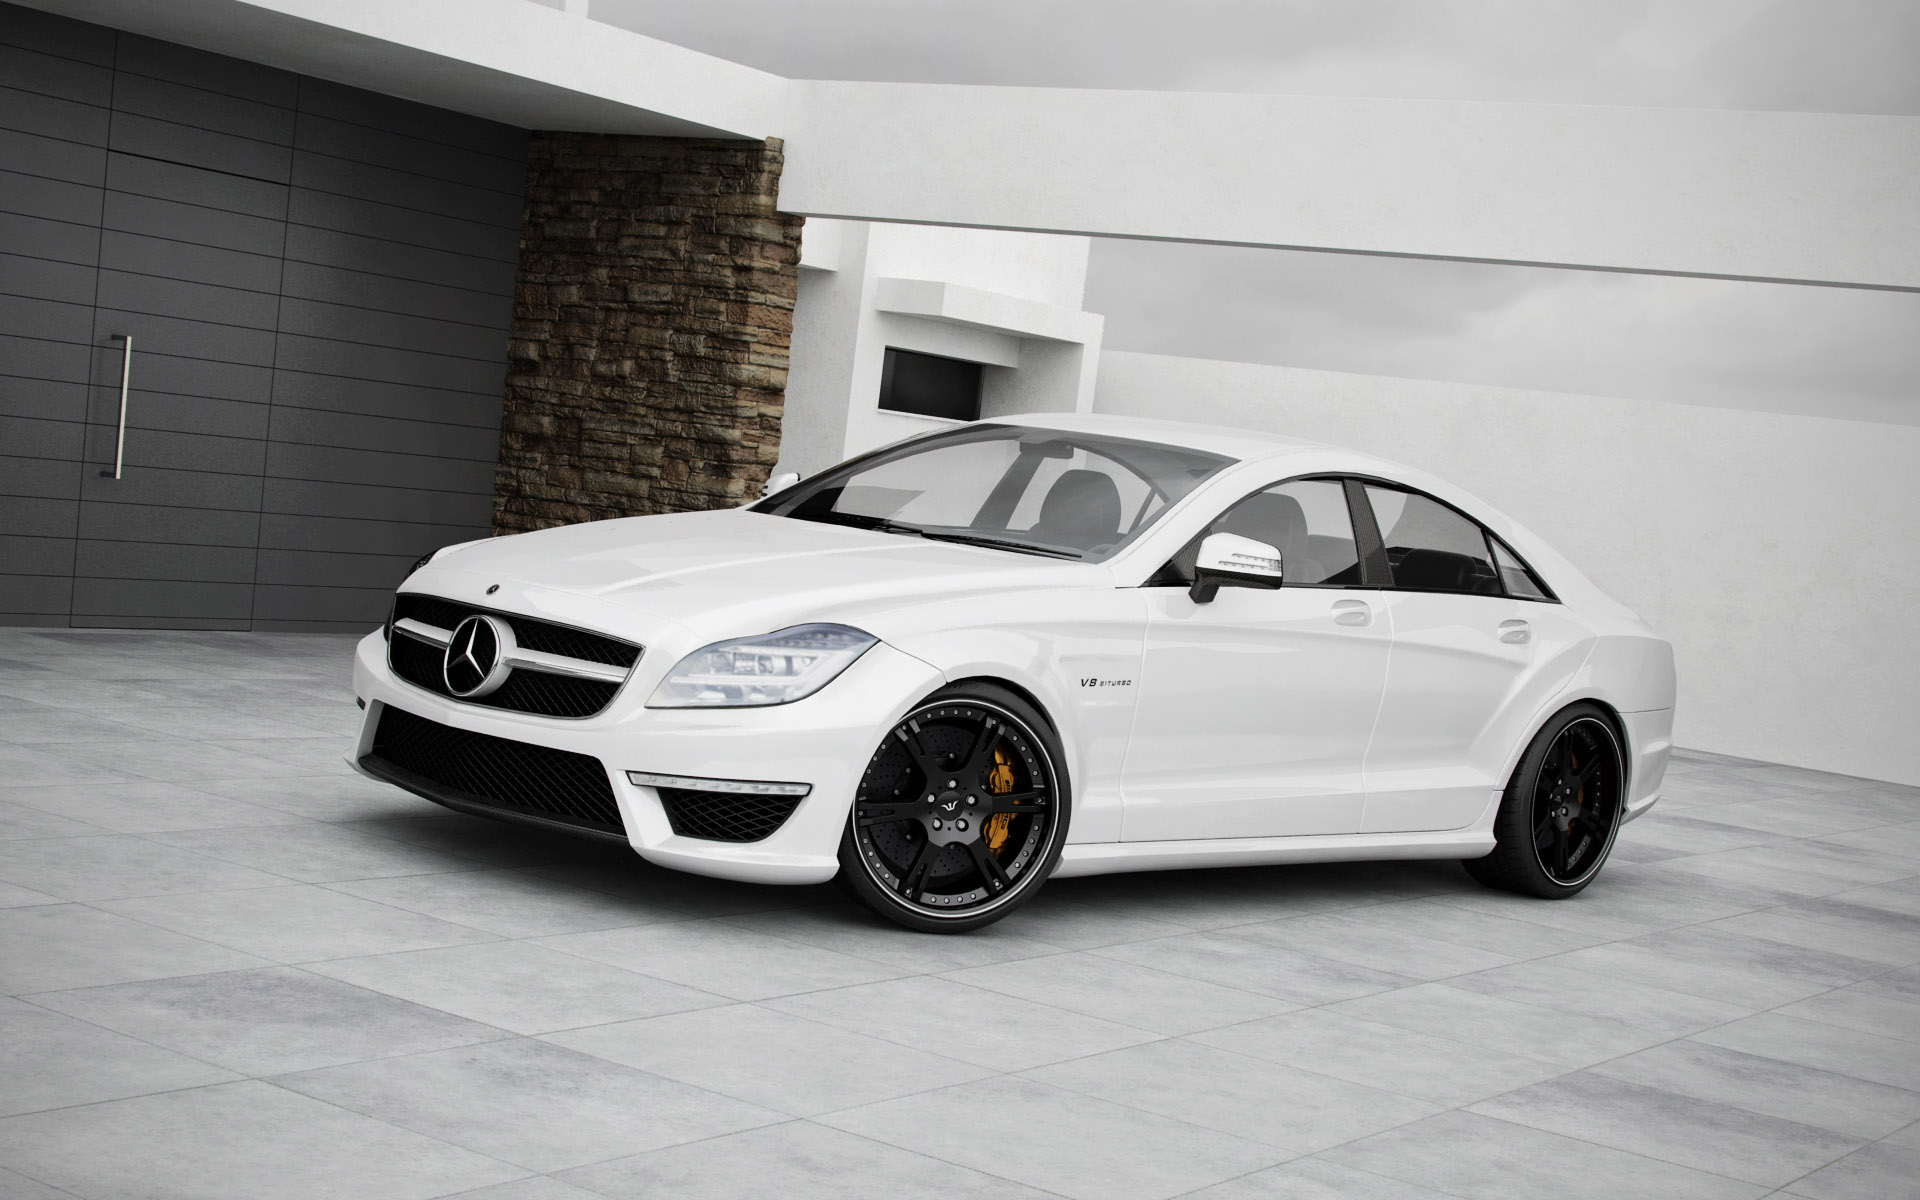 mercedes cls63 amg wallpaper 1920x1200 17396. Black Bedroom Furniture Sets. Home Design Ideas